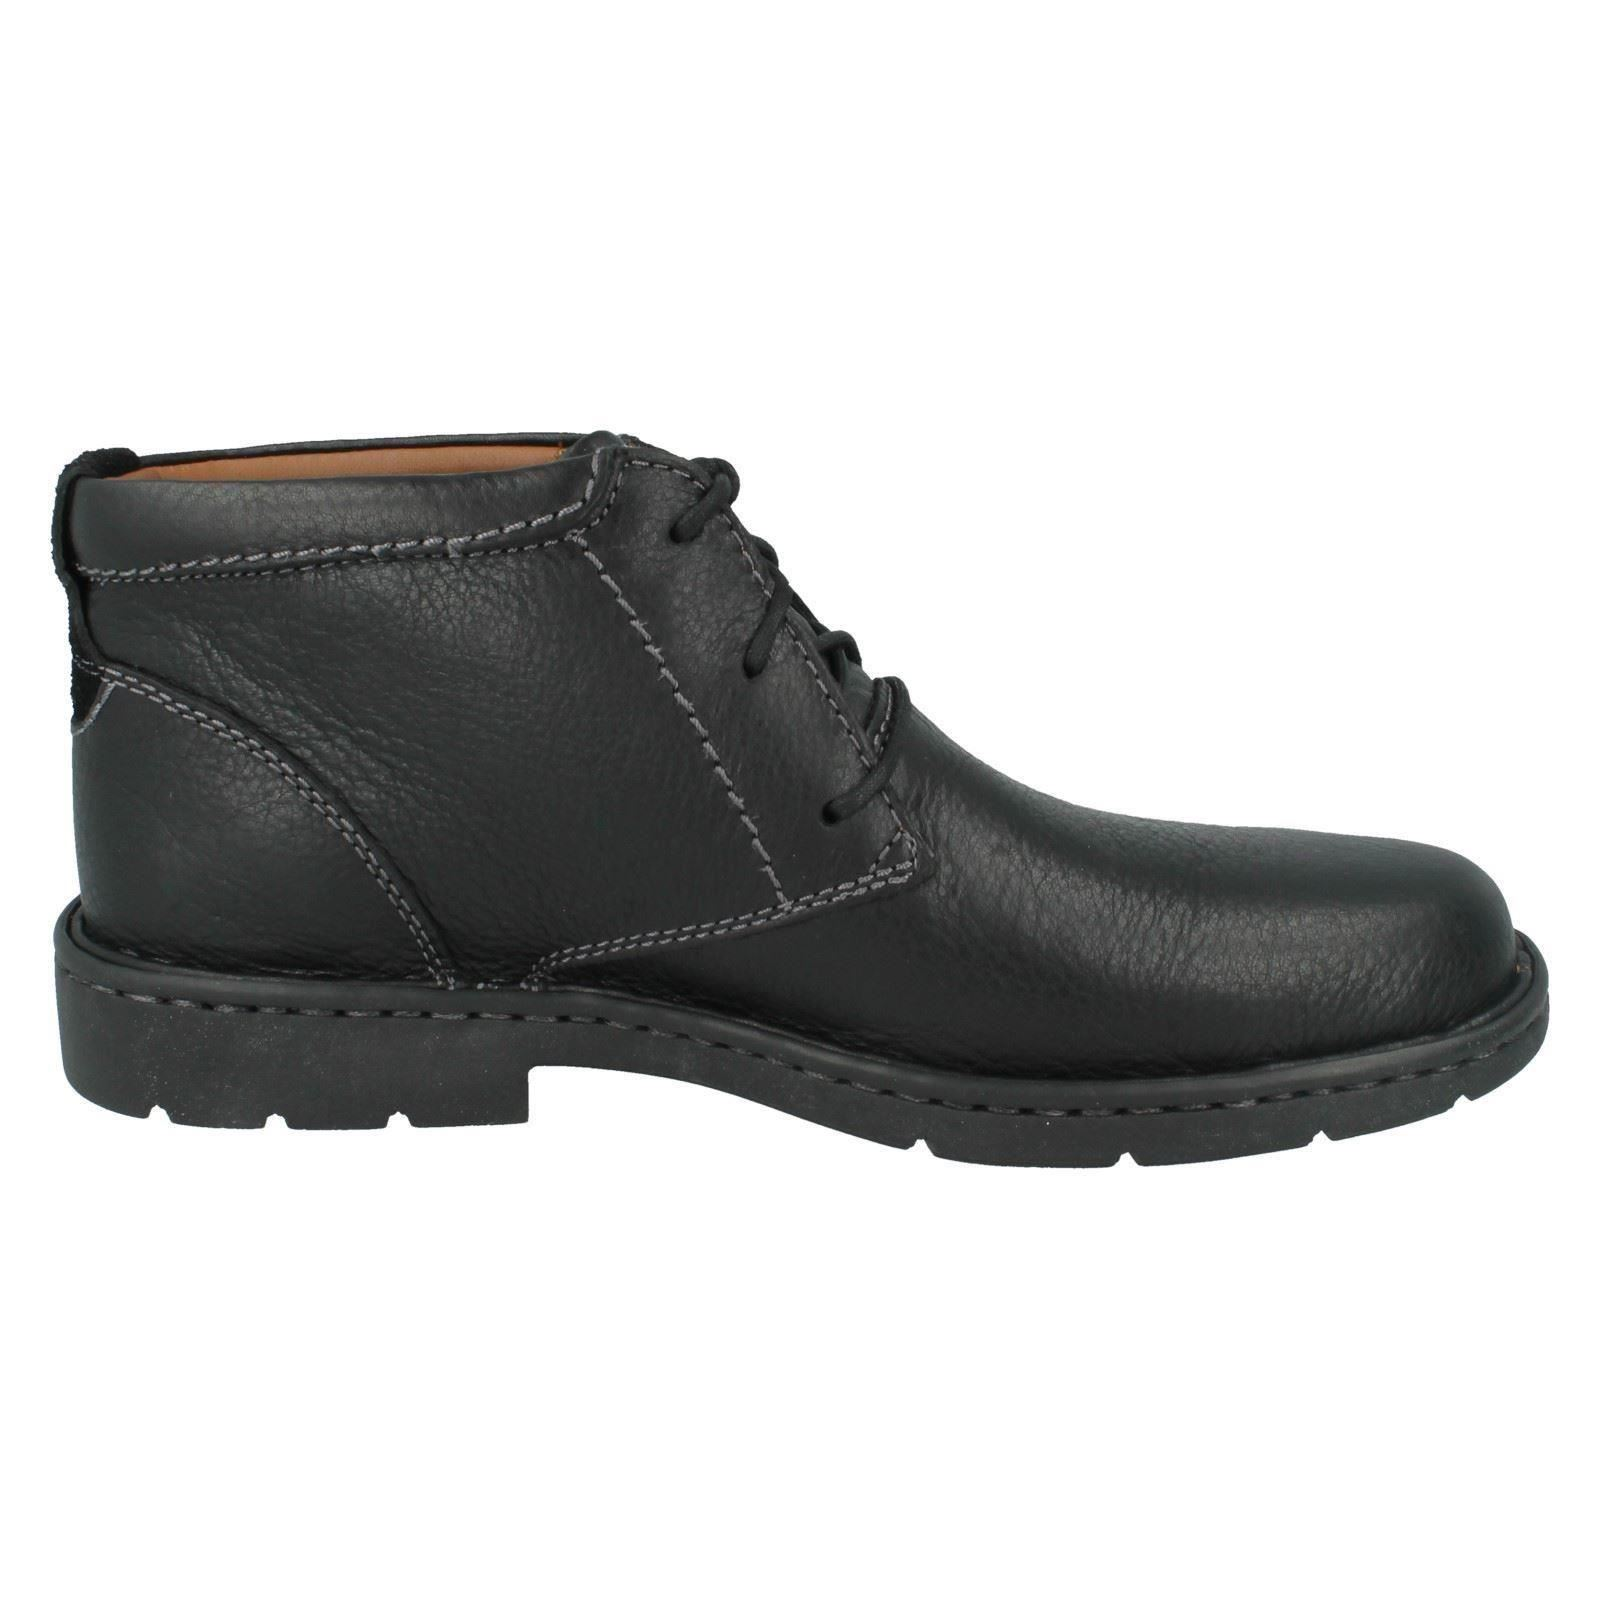 Hombres Clarks Casual Ankle botas The Style Style Style - Stratton Limit e4a709